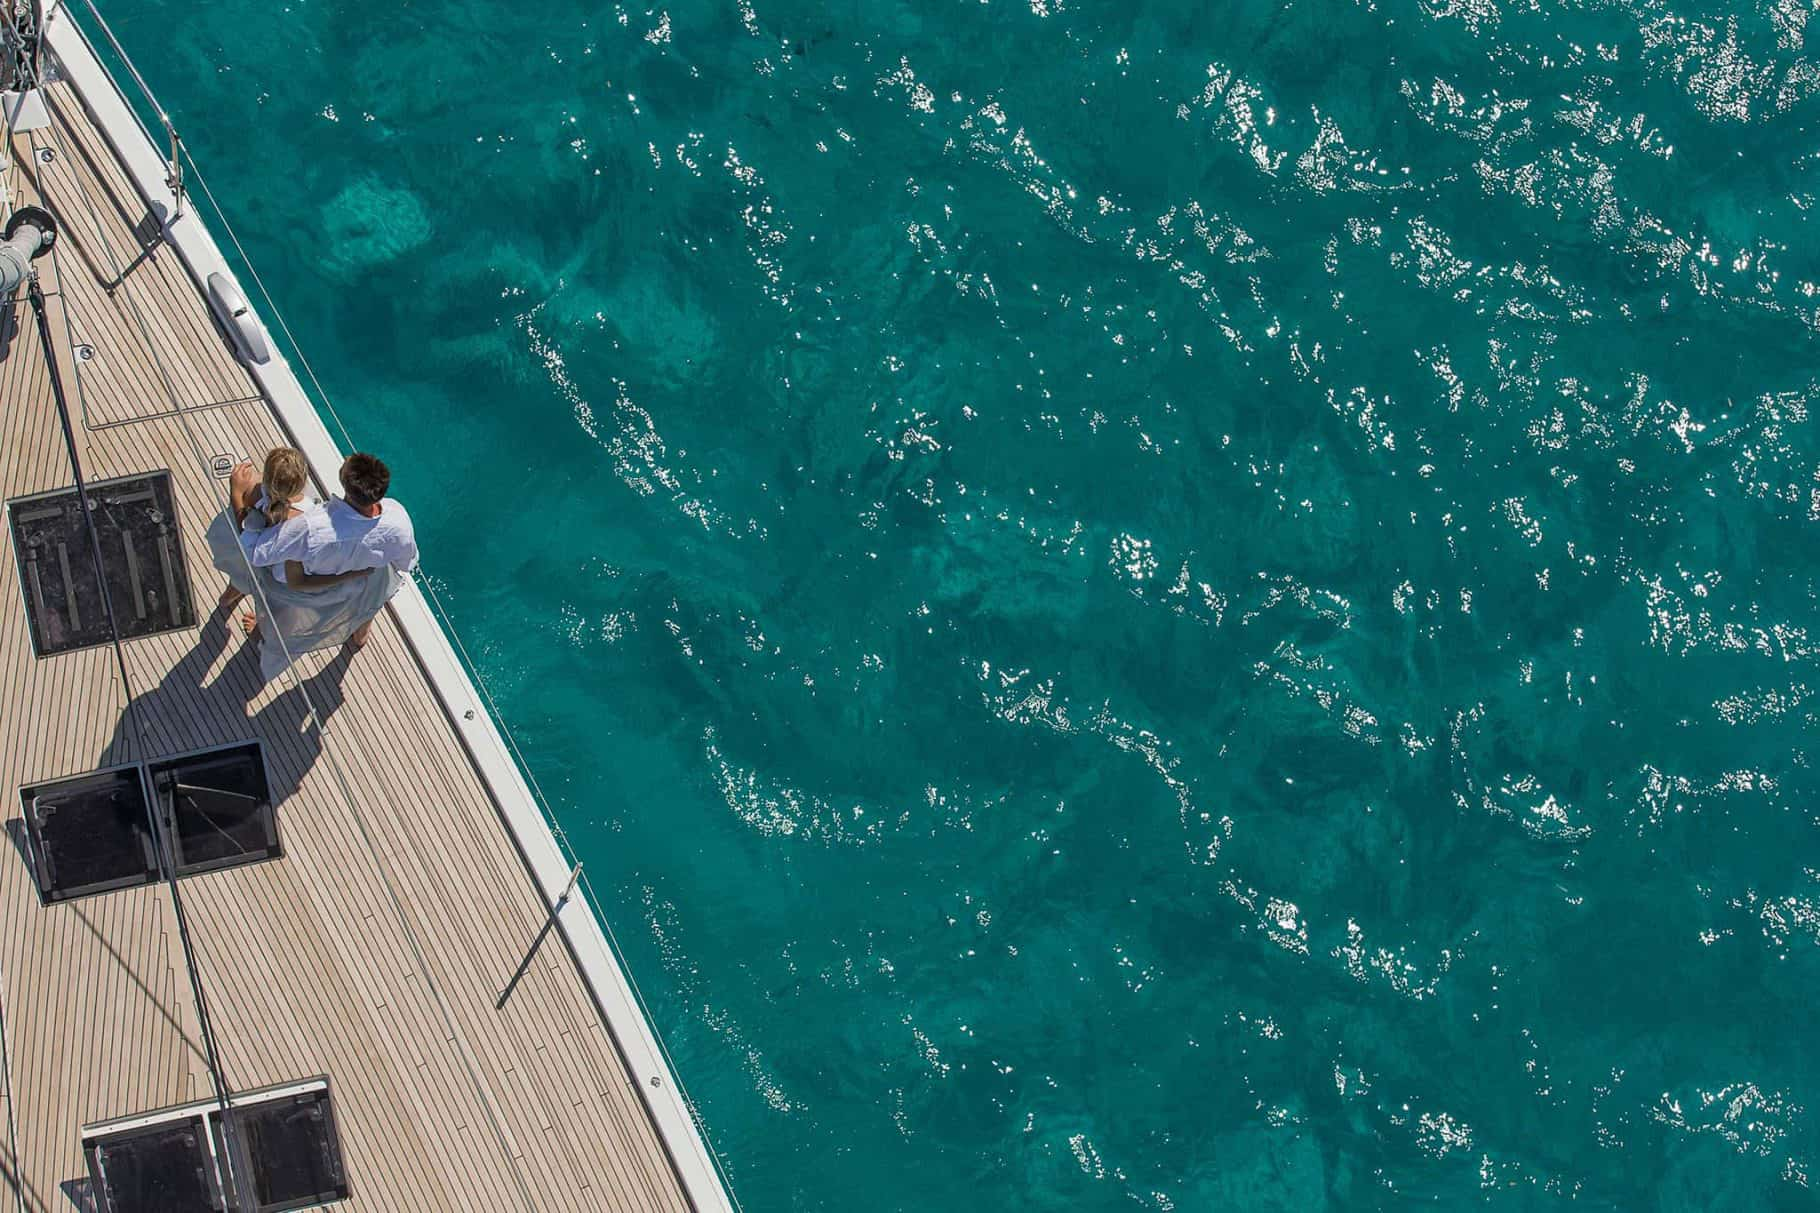 A man and woman looking at the ocean from the deck of a yacht